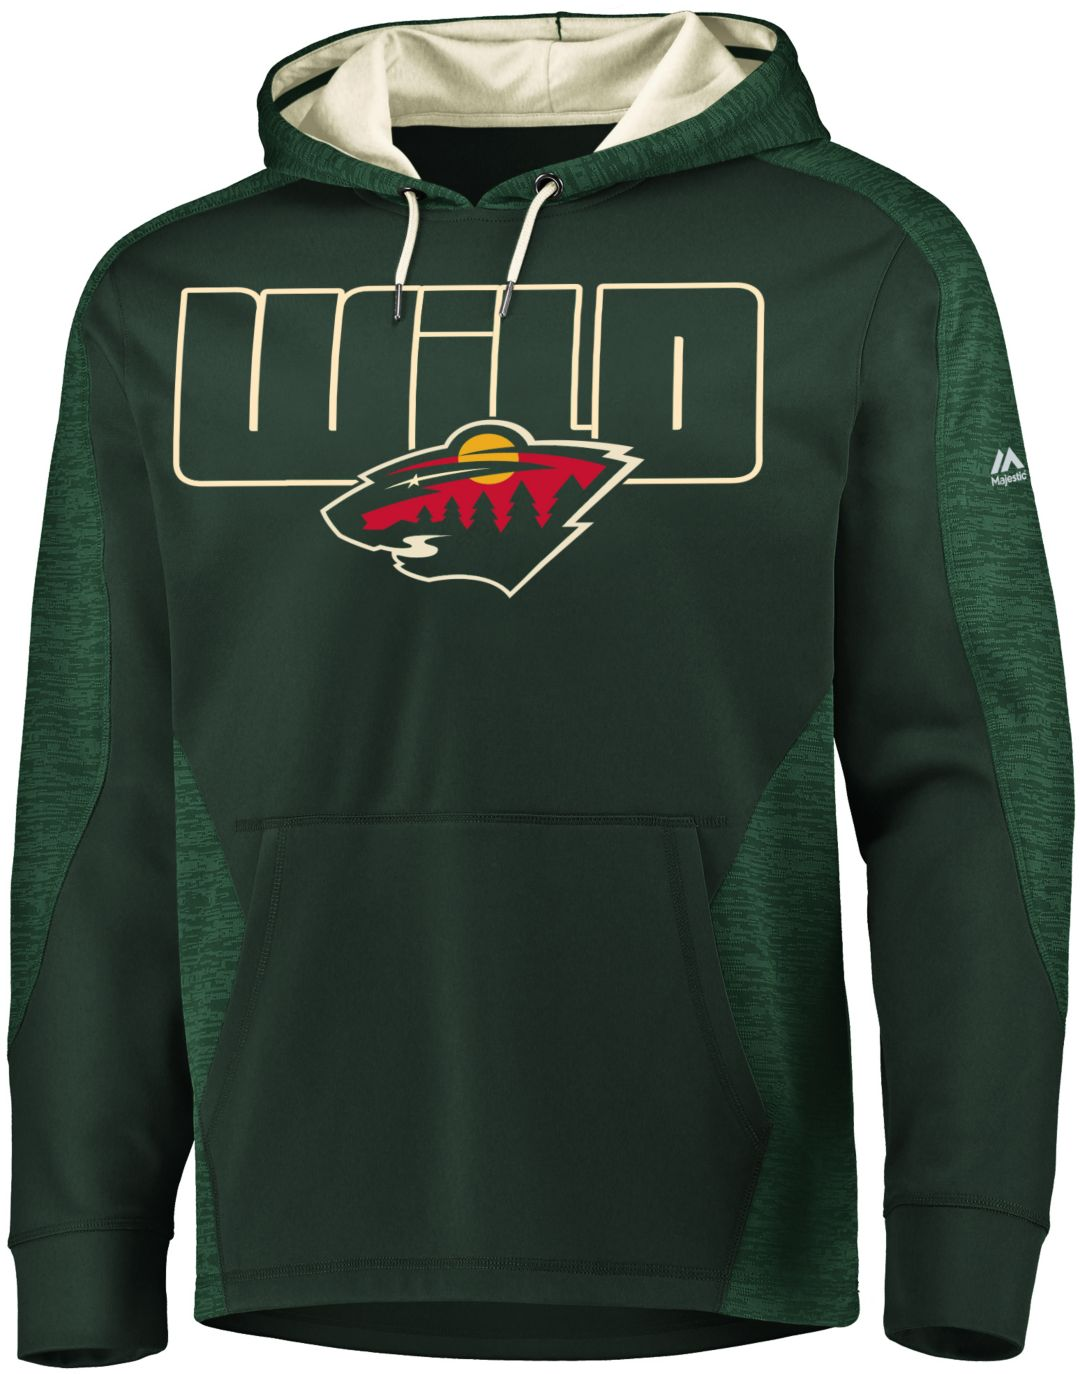 brand new 881a5 f661b Majestic Men's Minnesota Wild Armor Green Hoodie